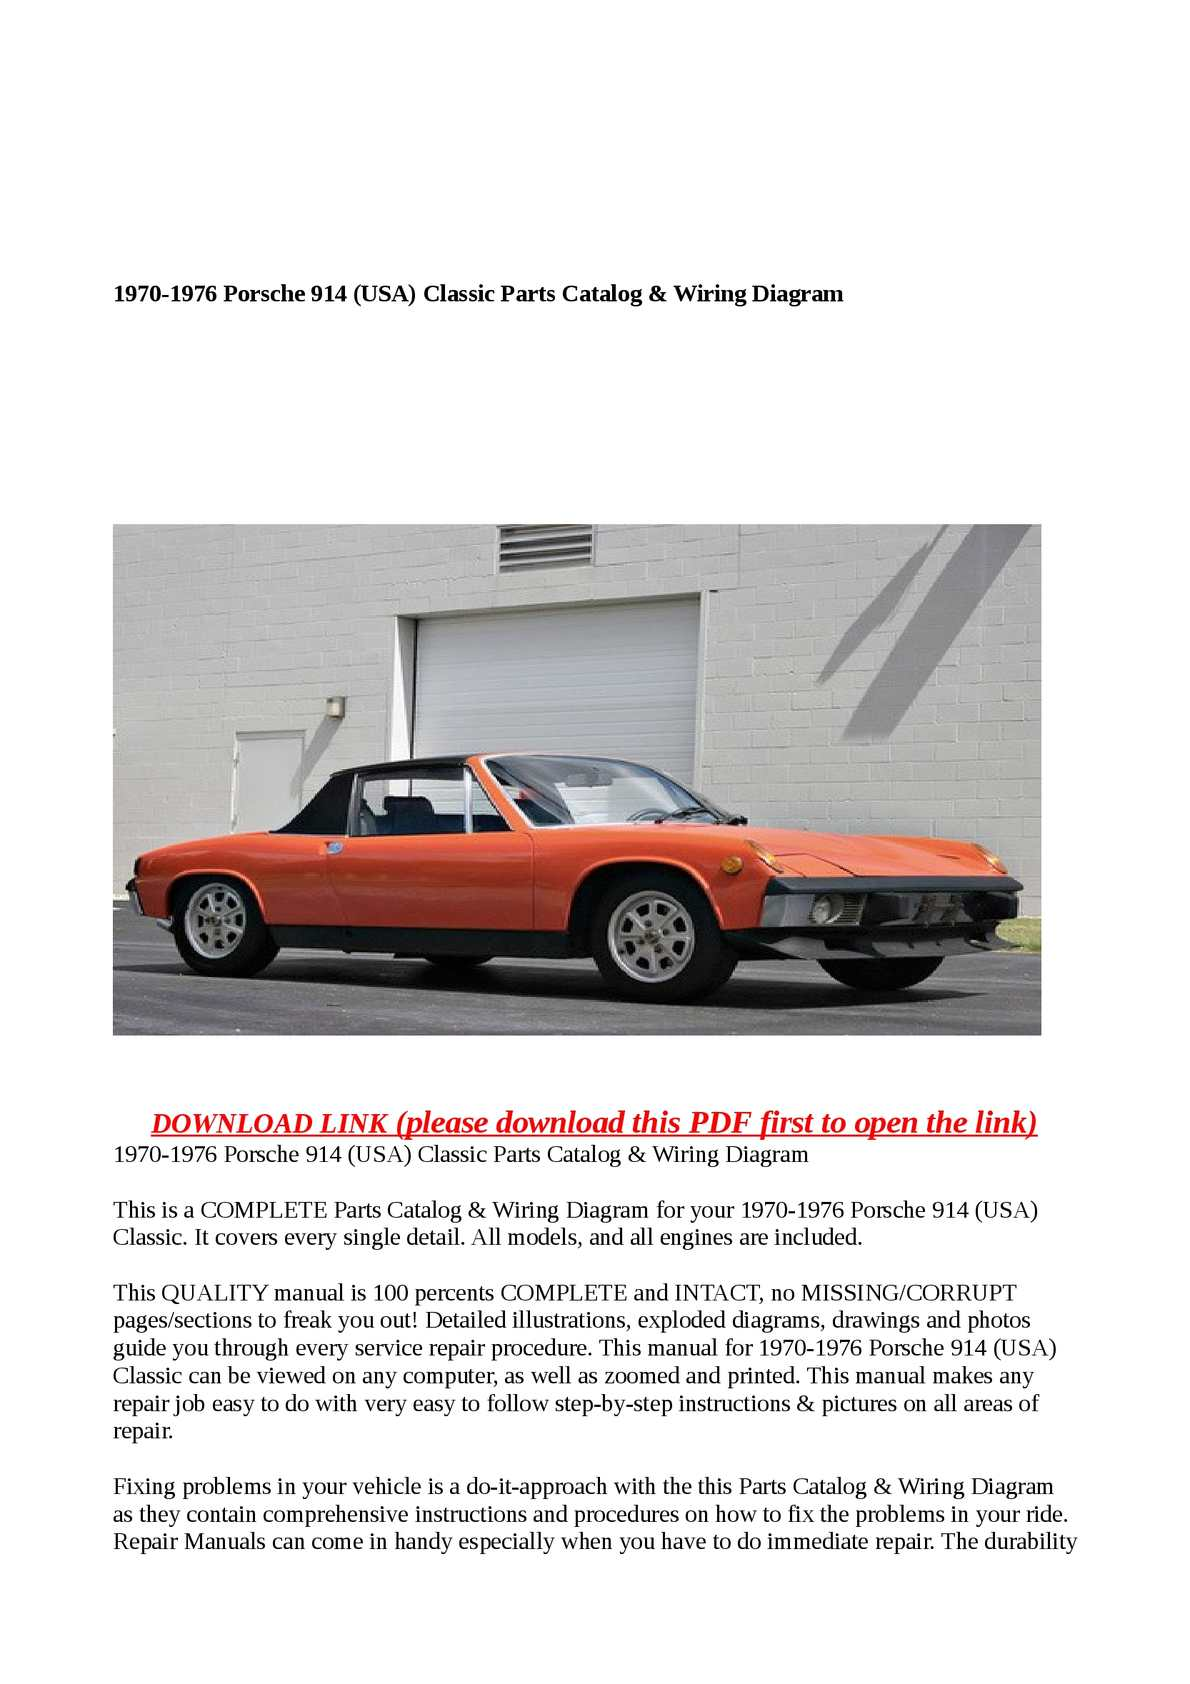 Calaméo - 1970-1976 Porsche 914 (USA) Classic Parts Catalog & Wiring Diagram